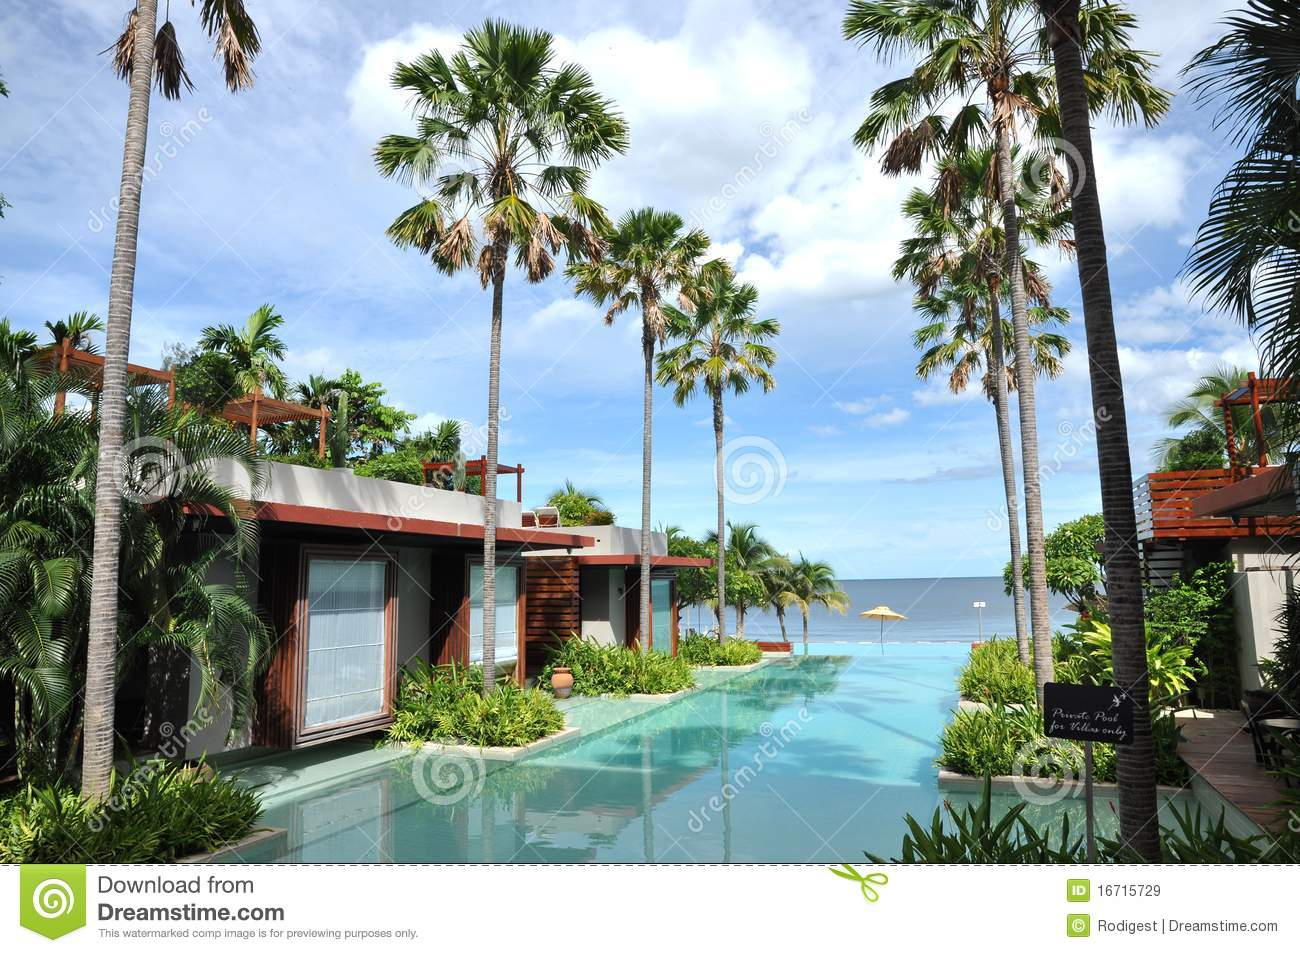 Sea Palm Tree Resort Swimming Pool Royalty Free Stock Images  Image 16715729